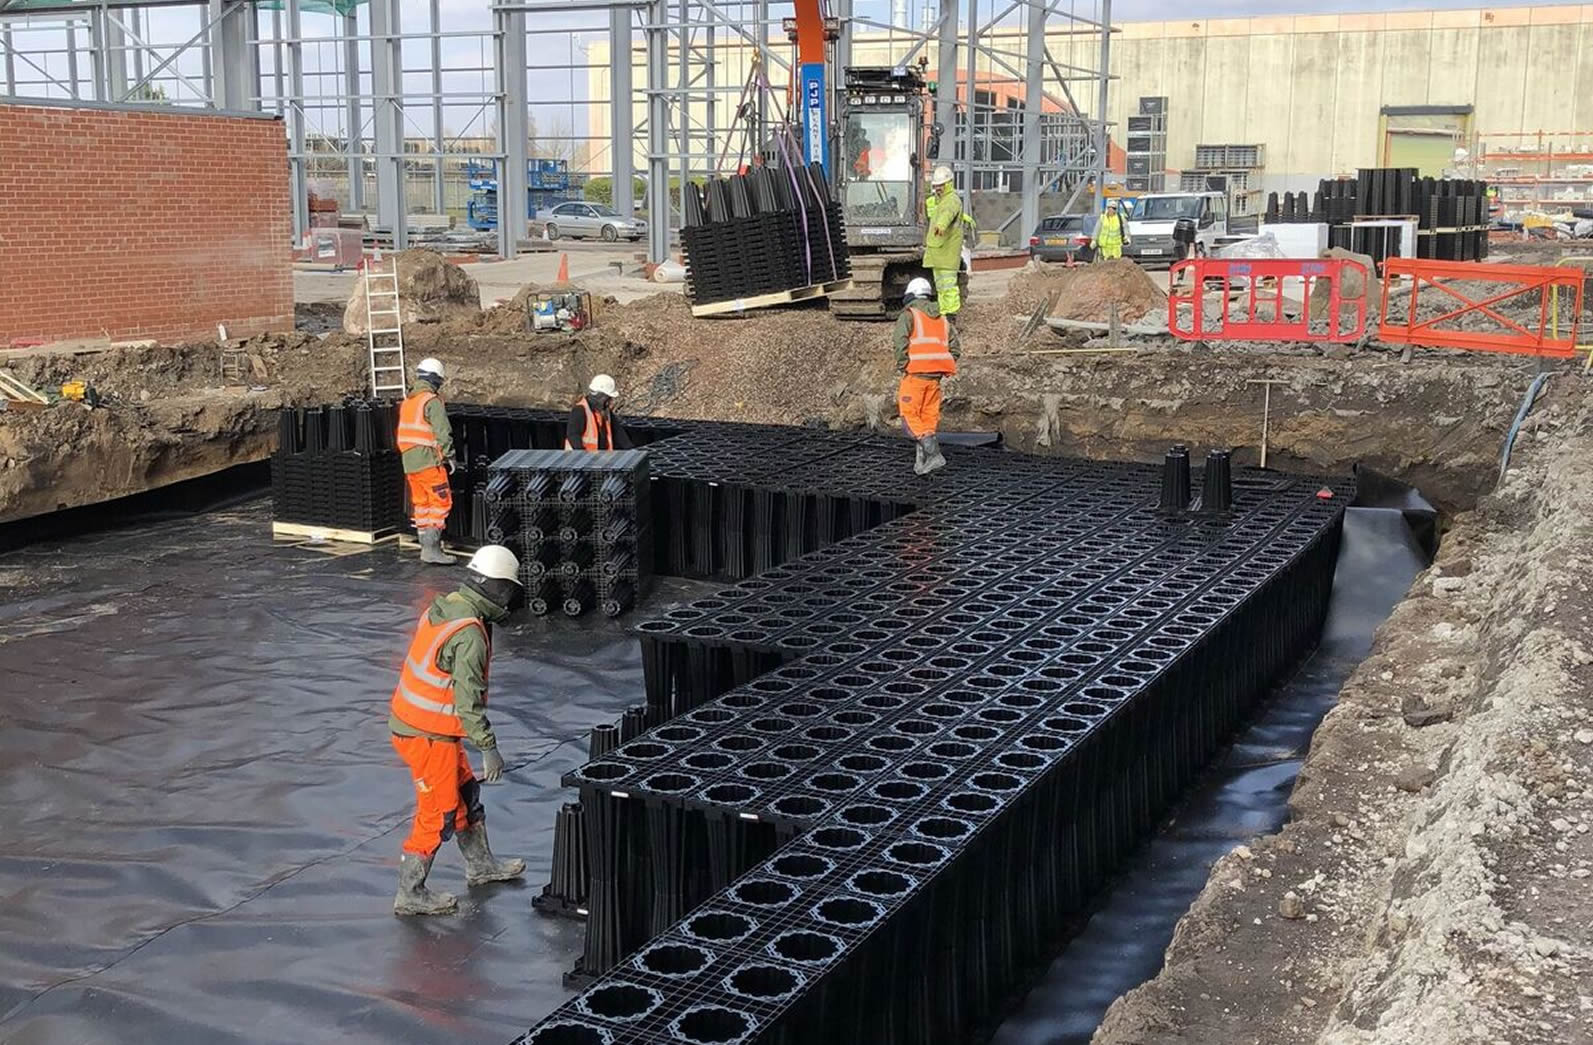 Drainage Systems  - ✓  Foul & Surface Water✓  Deep Drainage & Culverts✓  Stormwater Attenuation✓  Land Drains✓  Utility Connections✓  Interceptors